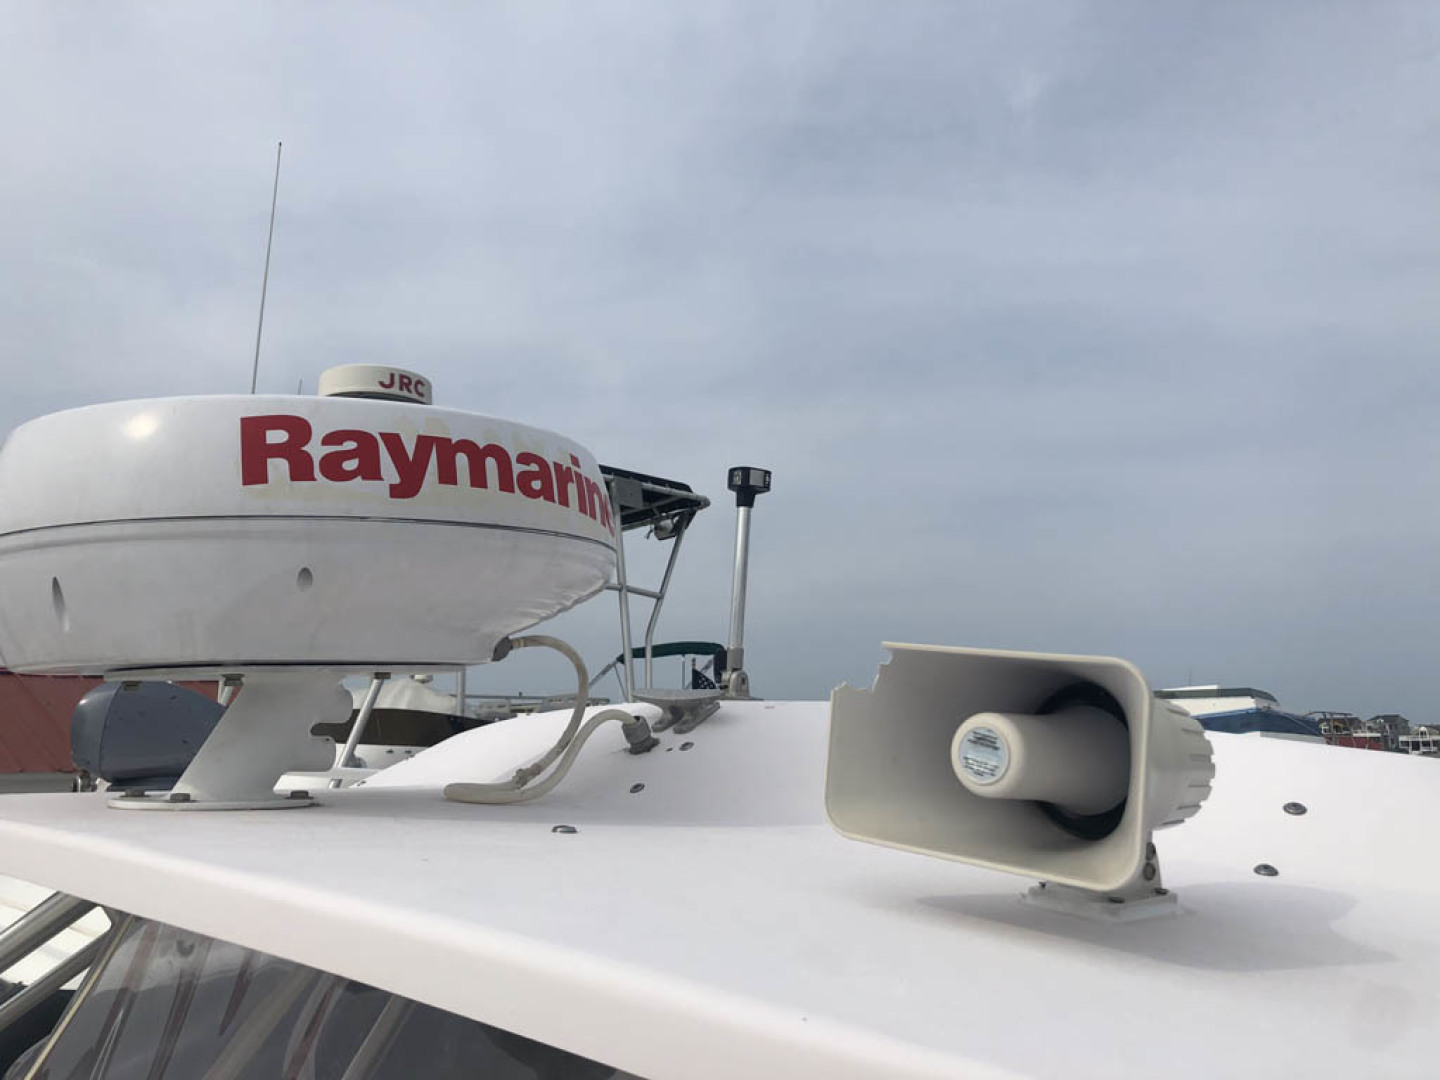 Grady-White-330 Express 2003-Lady L III Long Beach Township-New Jersey-United States-Hardtop Mounted Raymarine-1510556 | Thumbnail